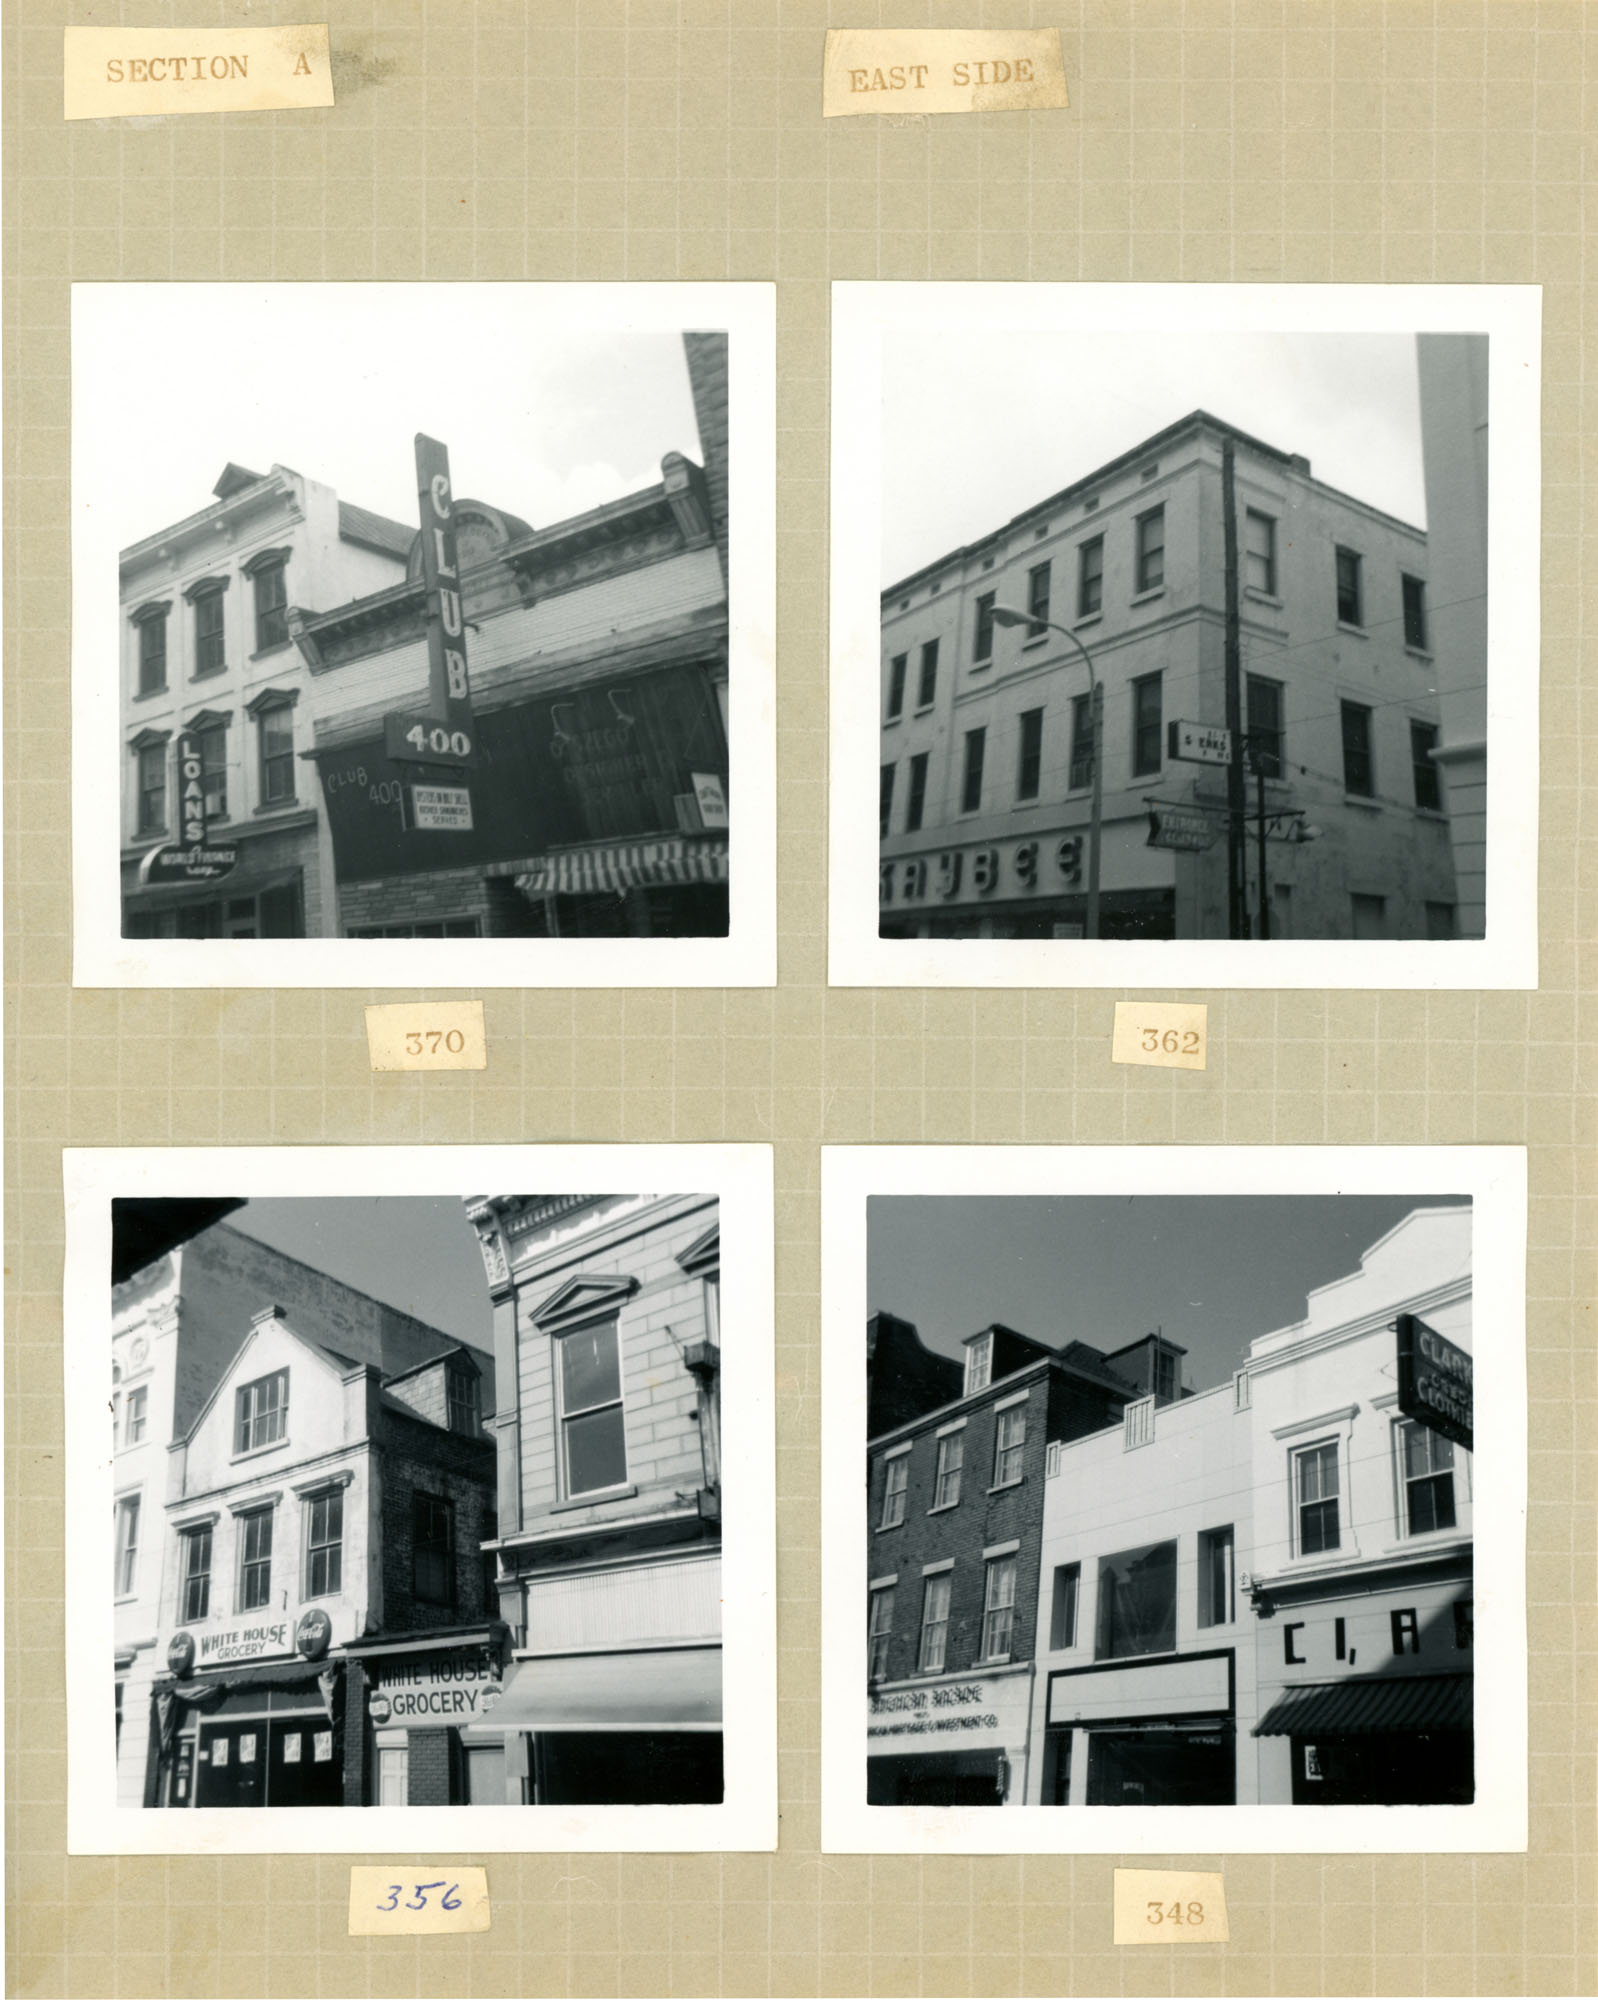 King Street Survey Photo Album, Page 11 (back): 344-370 King Street